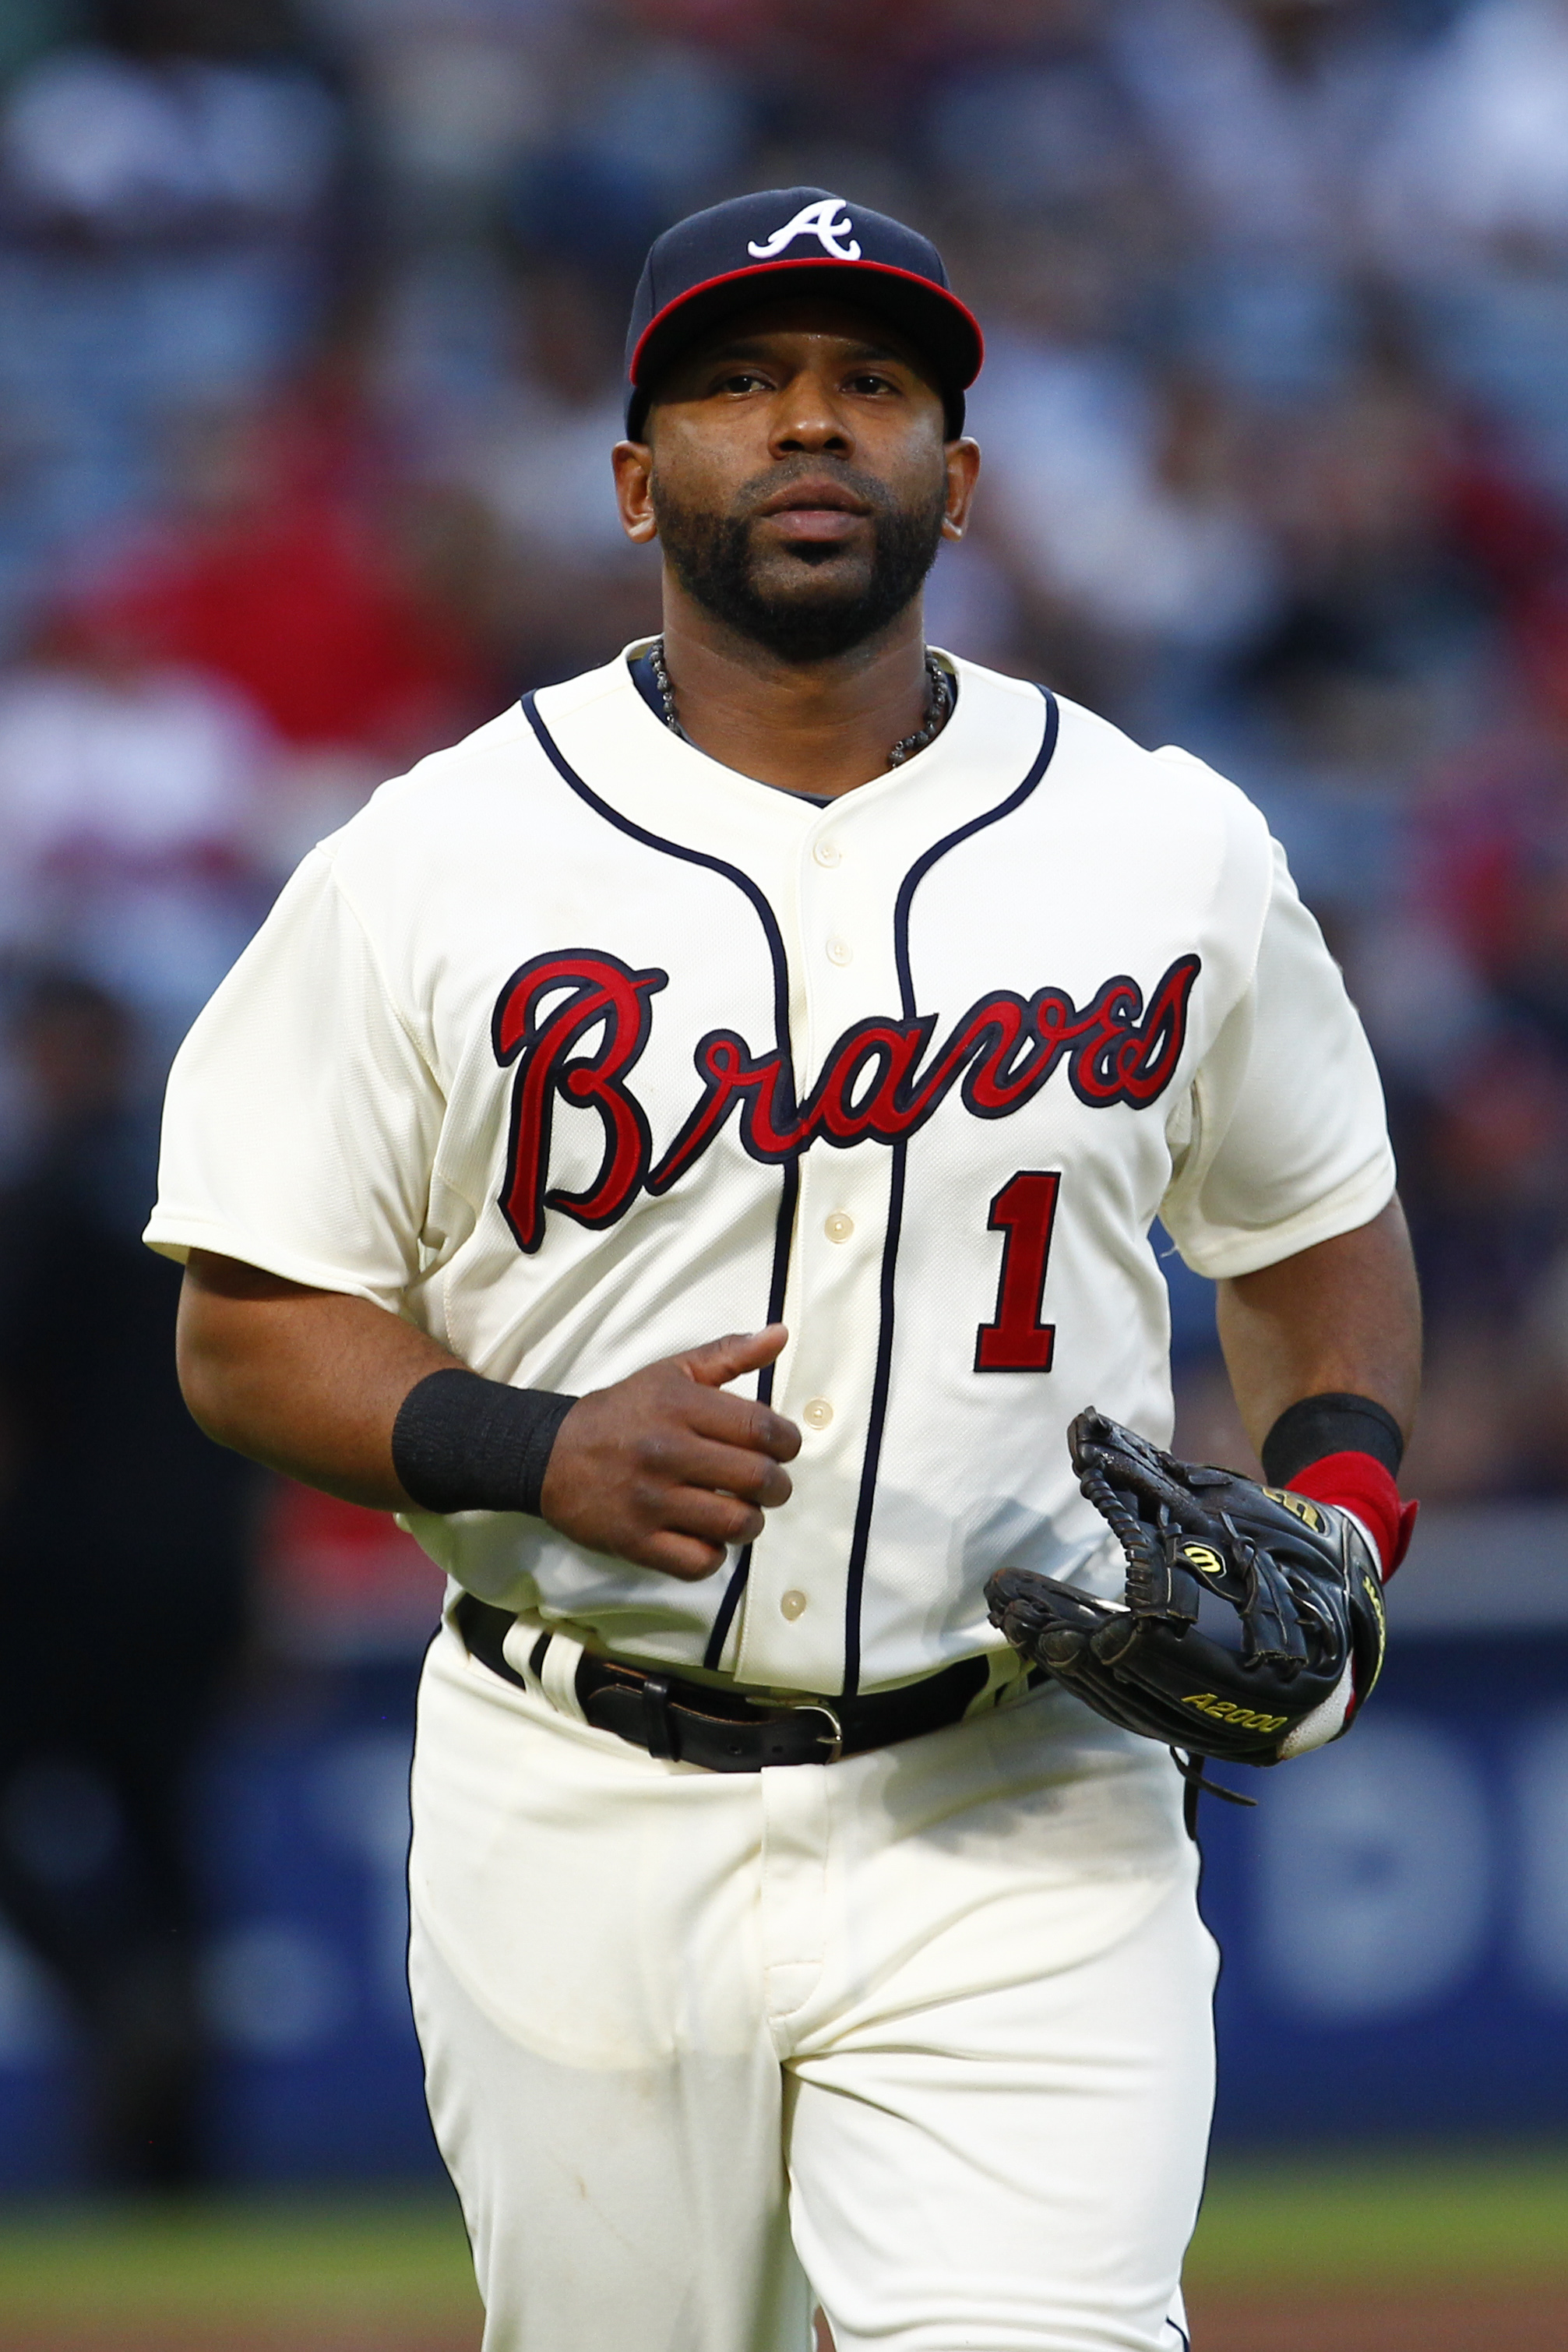 Atlanta Braves' Alberto Callaspo heads back to the dugout during the second inning of a baseball game against the Cincinnati Reds on Saturday, May 2, 2015 in Atlanta. (AP Photo/Kevin Liles)